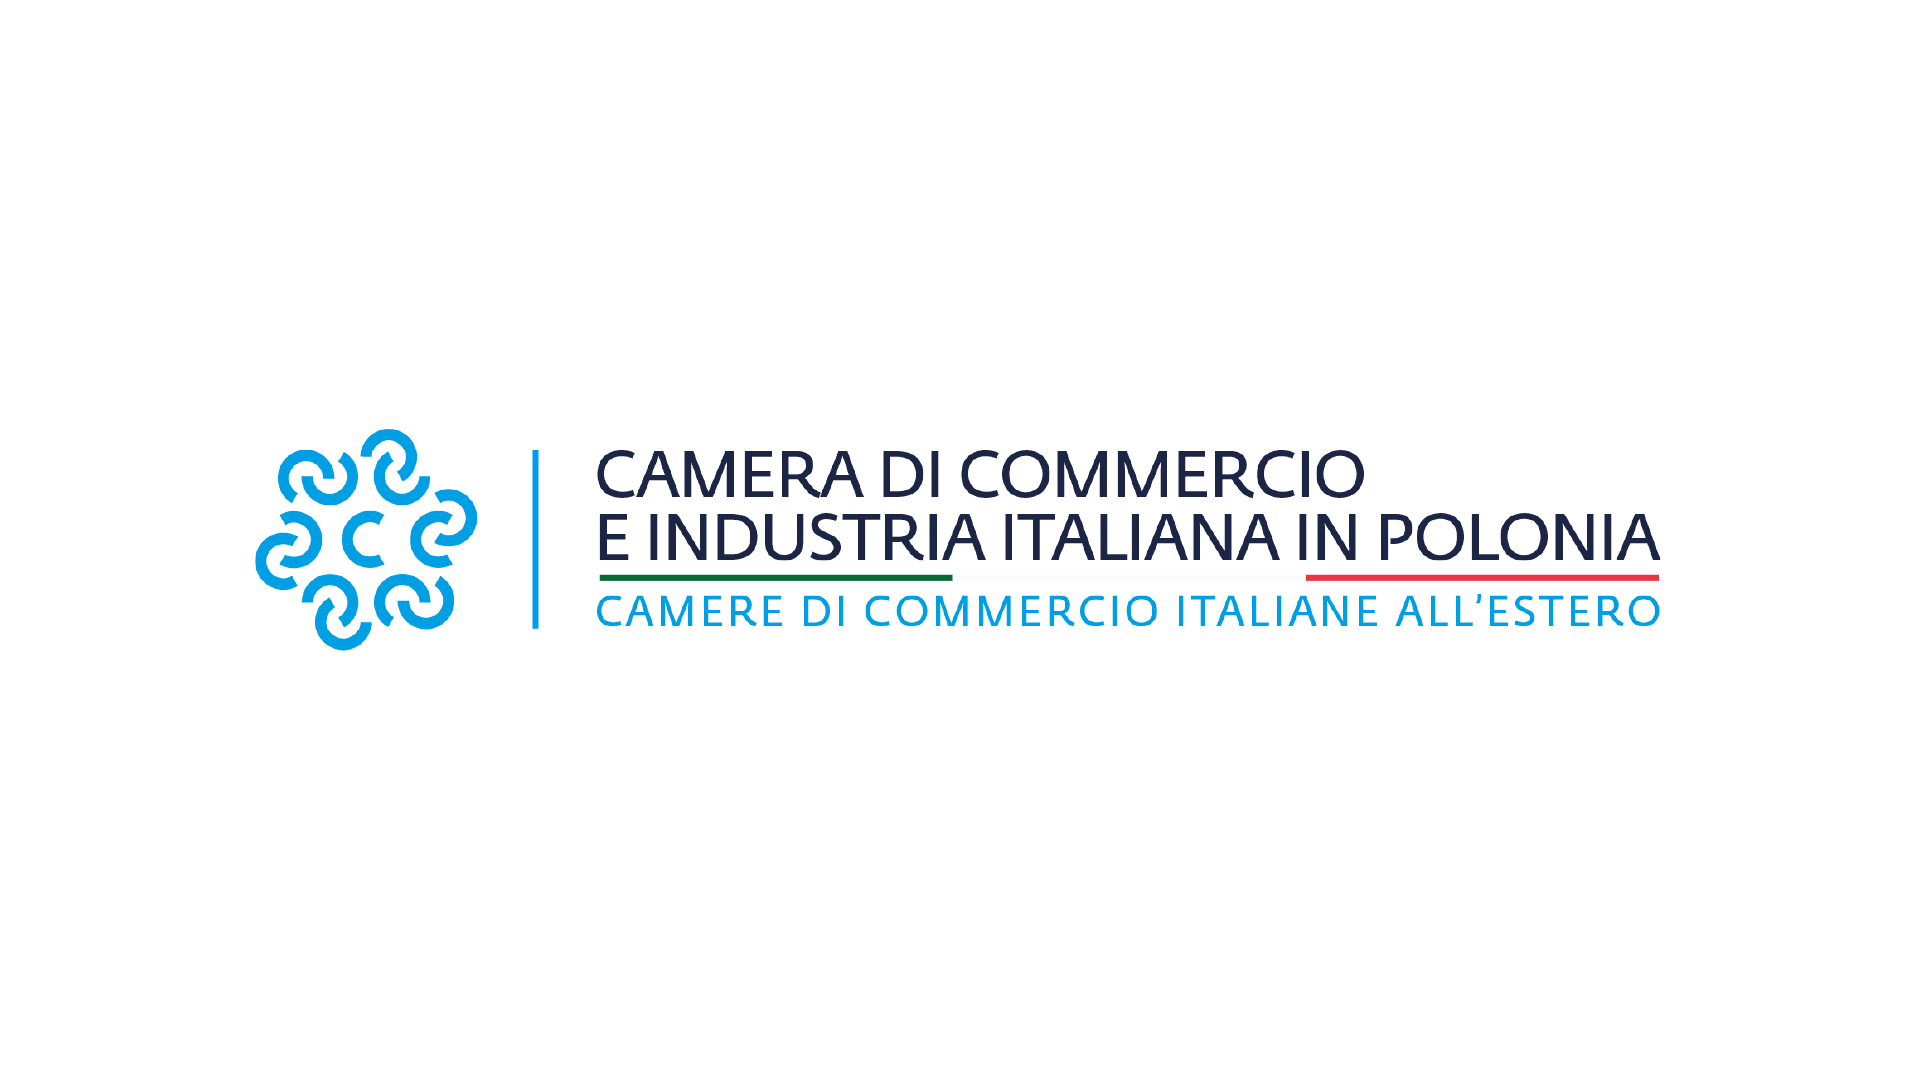 The Italian Chamber of Commerce and Industry in Poland Digitalizes its Memberships with Glue Up